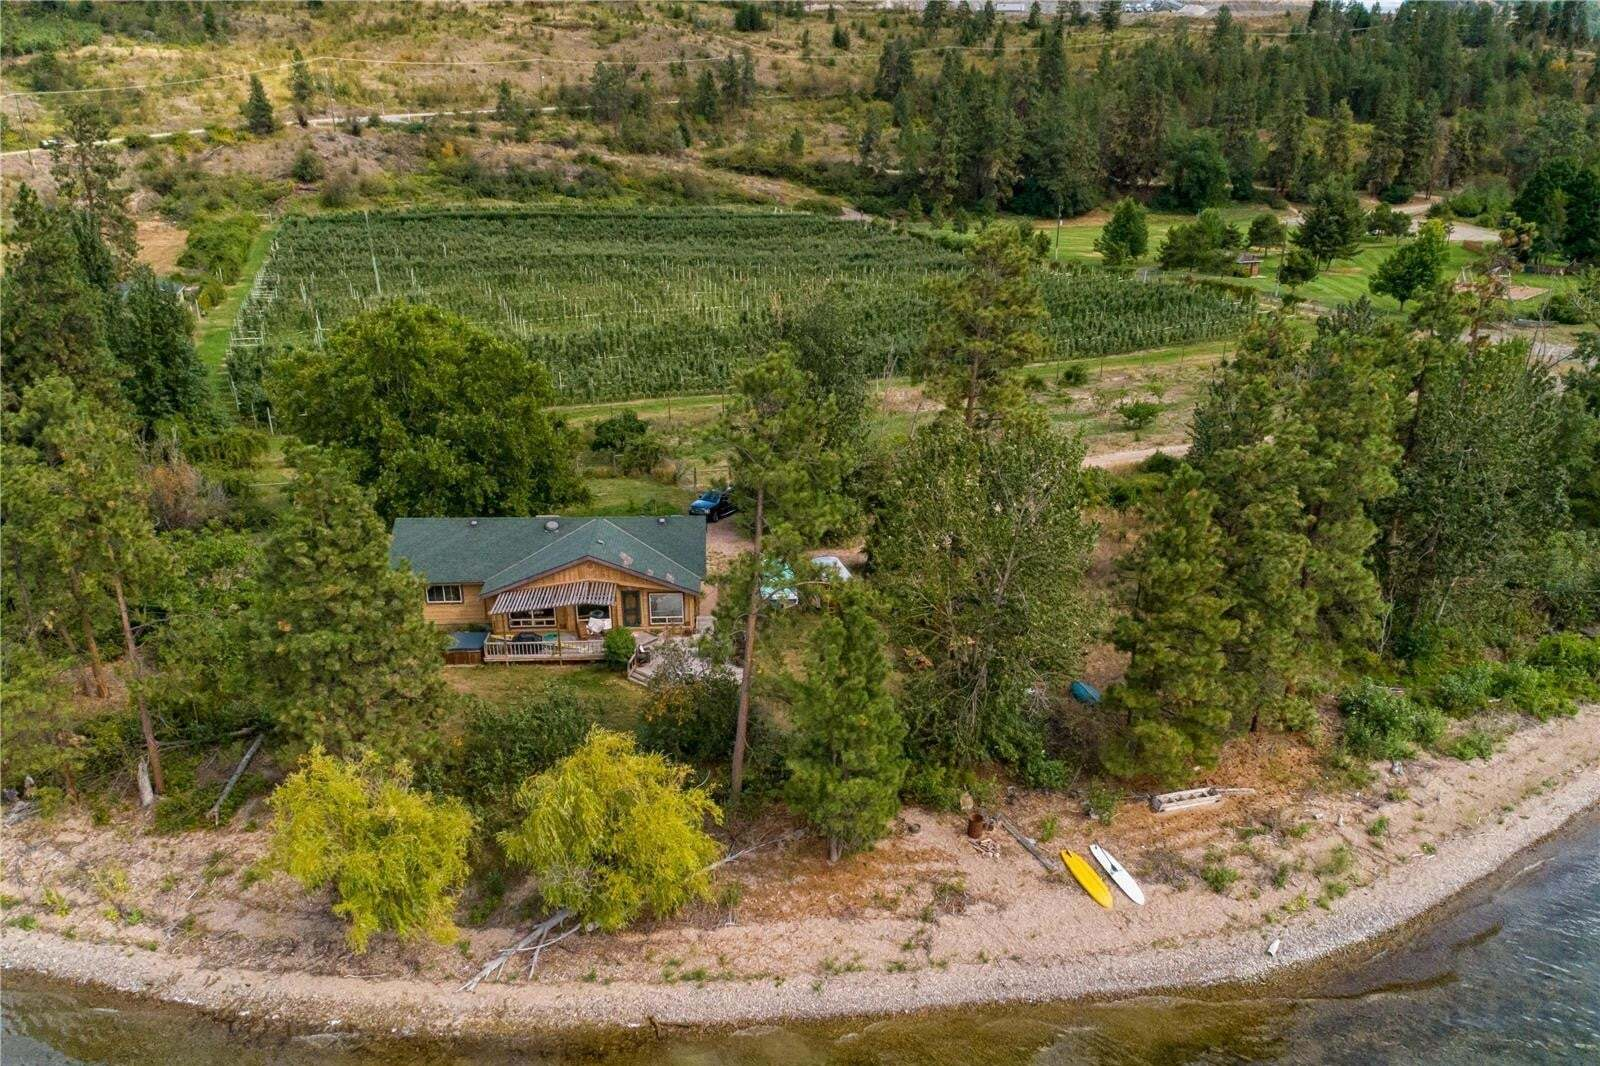 Home for sale at 15490 Carrs Landing Rd Lake Country British Columbia - MLS: 10186943